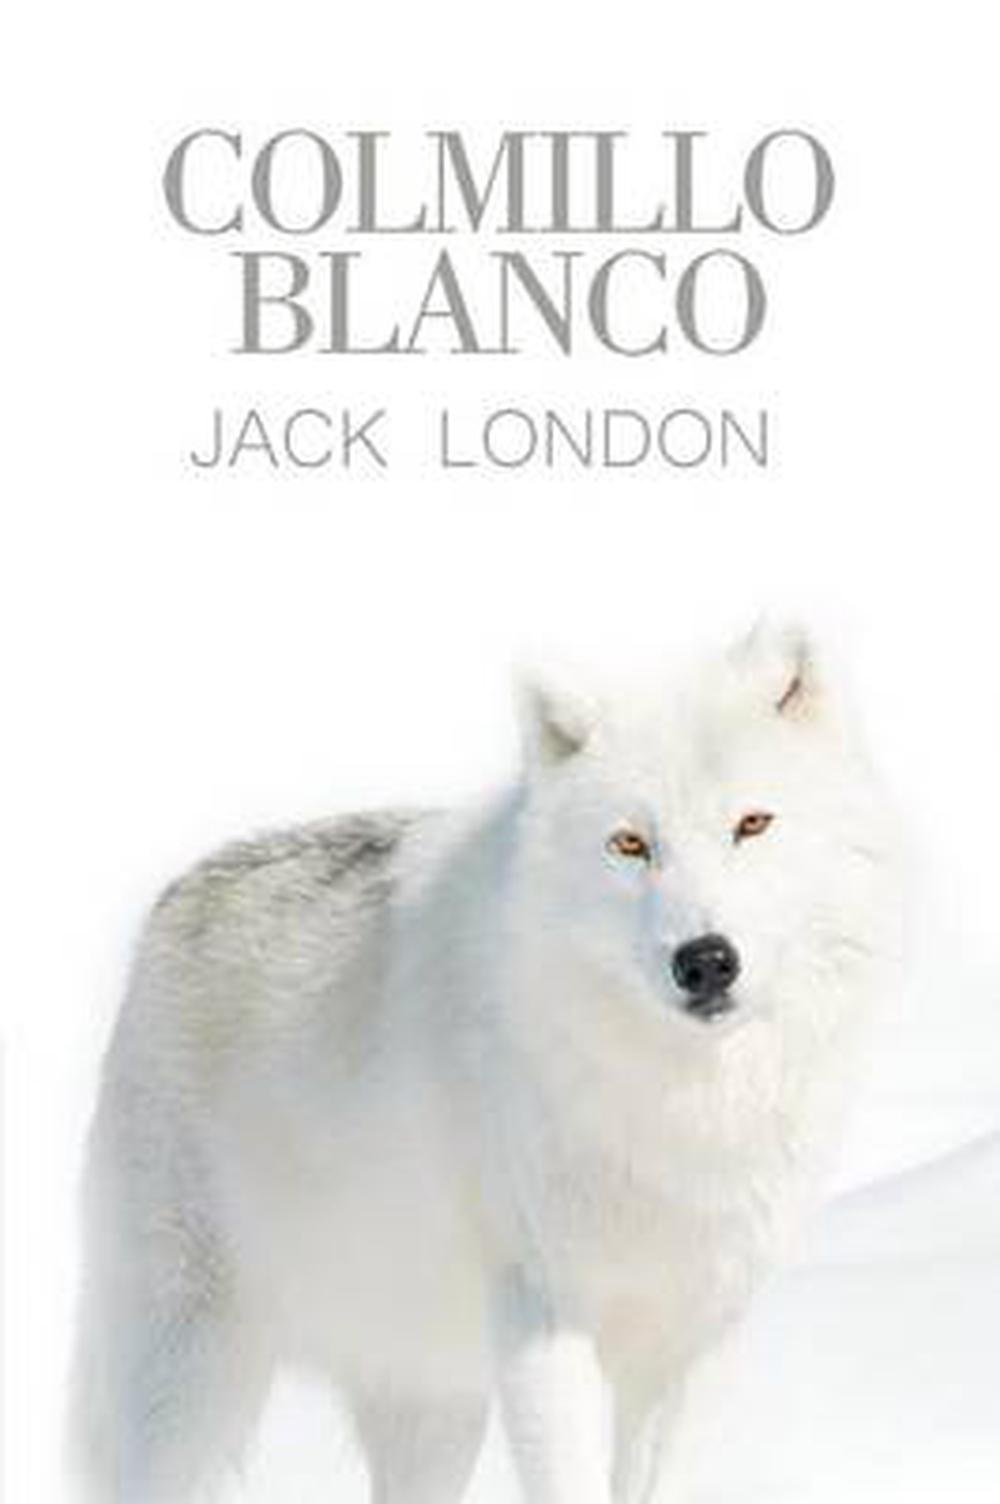 Colmillo Blanco Libro Details About Colmillo Blanco By Jack London Spanish Paperback Book Free Shipping